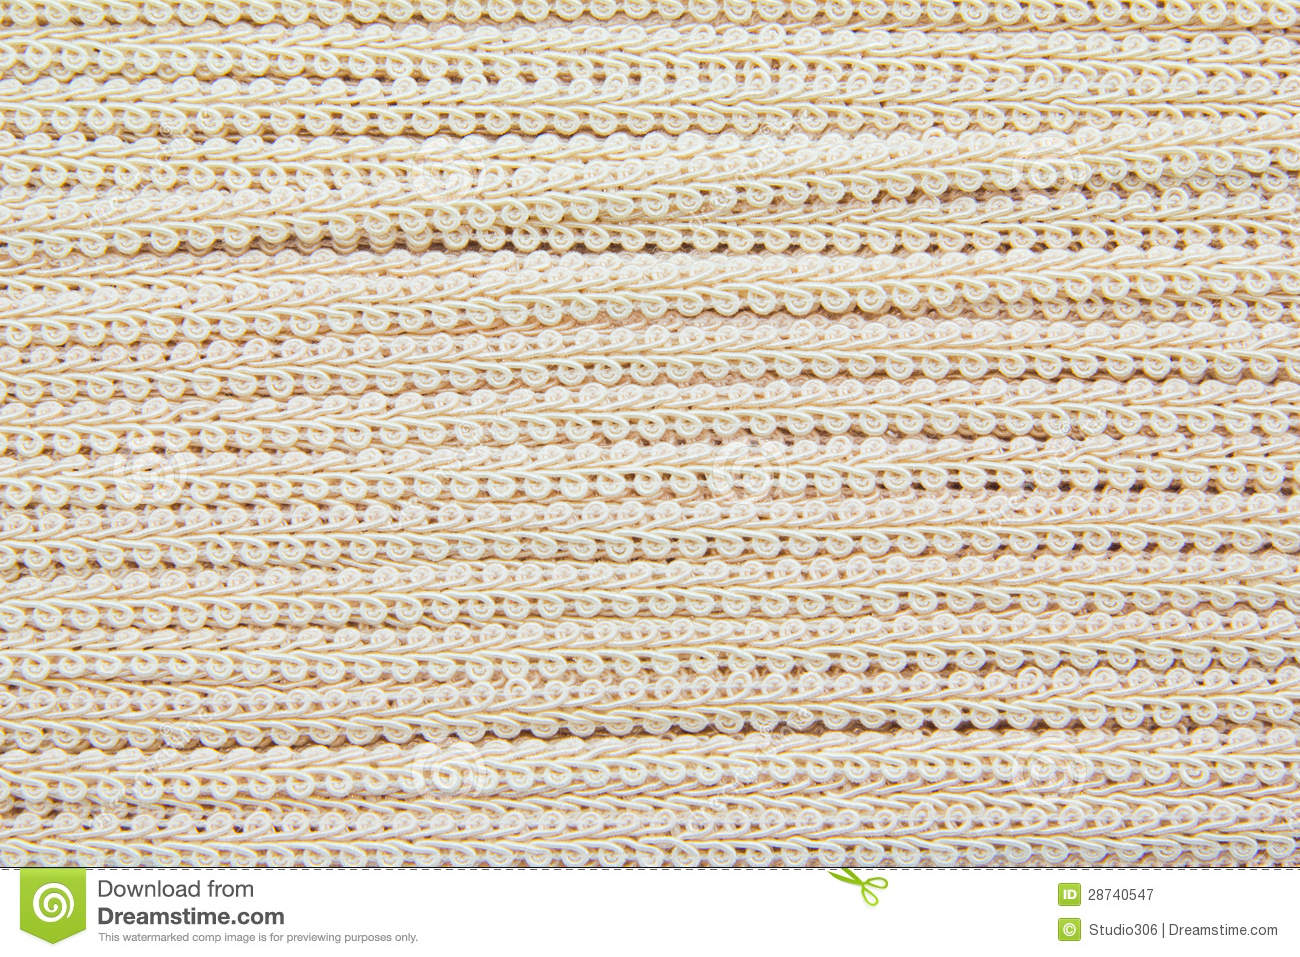 Cream lace fabric texture royalty free stock photography